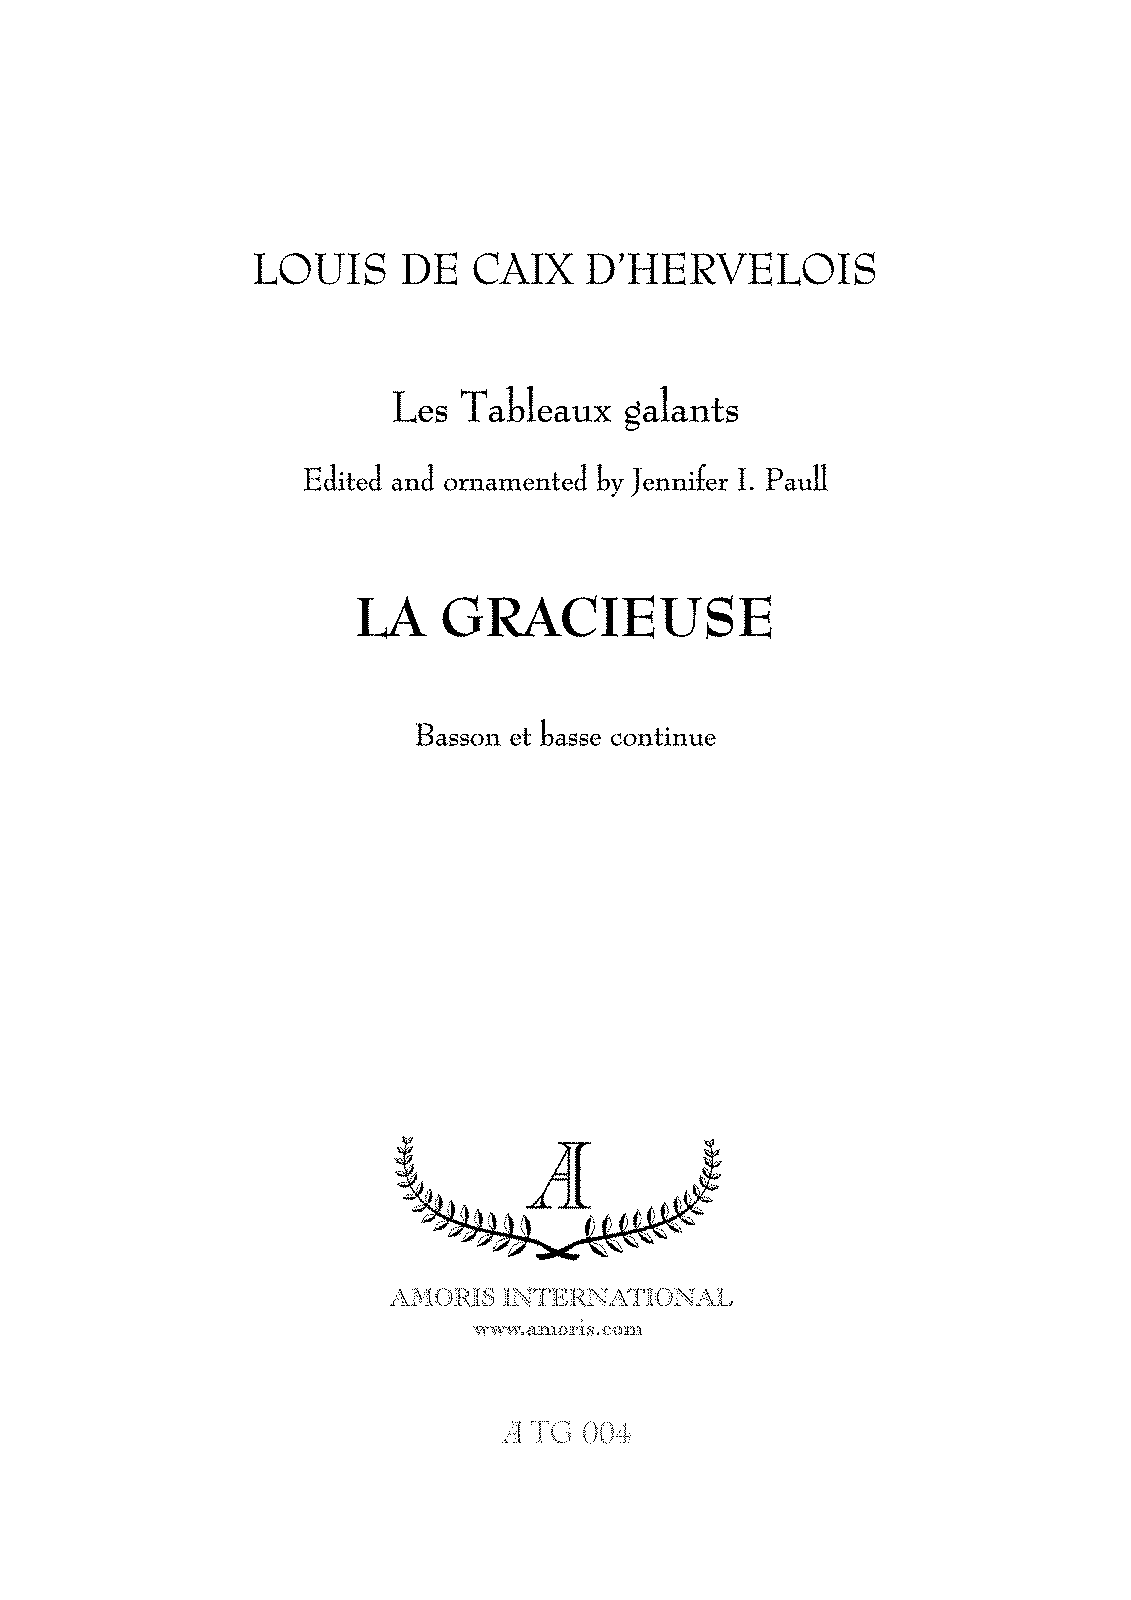 WIMA.bc91-La-Gracieuse-bassoon.pdf